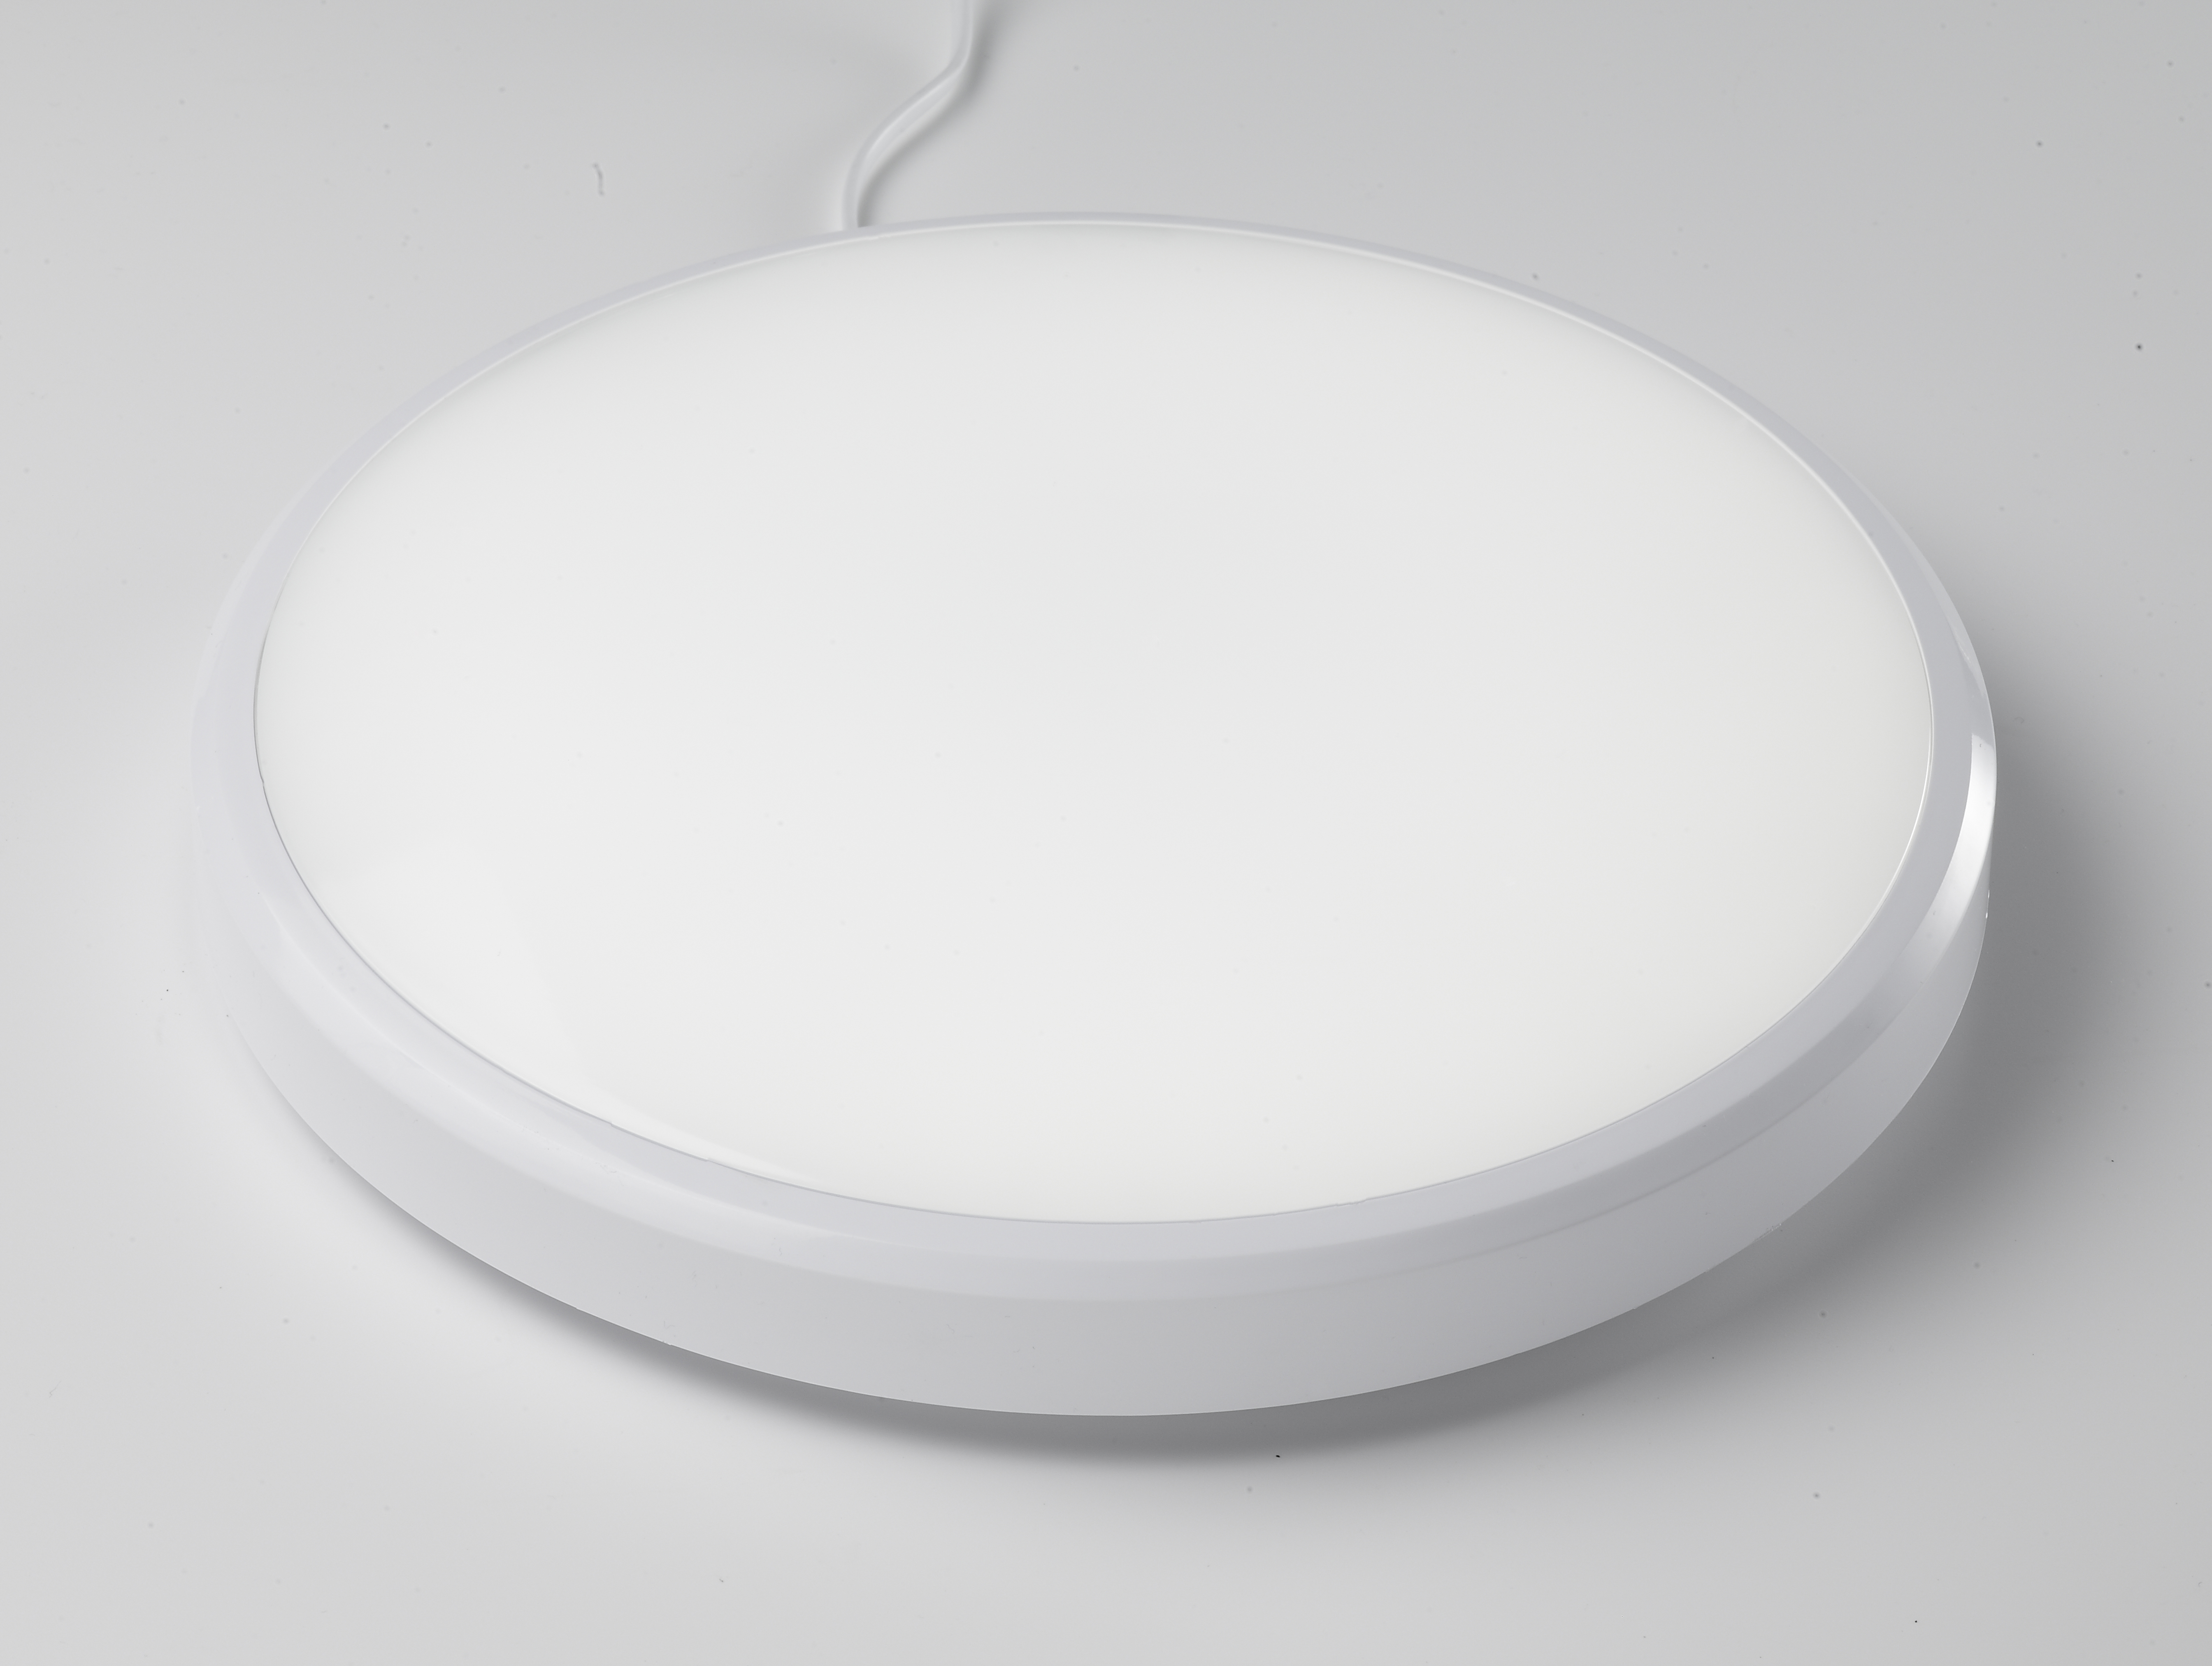 Firstlight Slimline Led Bathroom Wall Light In White: 18W LED Slim Ceiling/Wall Light